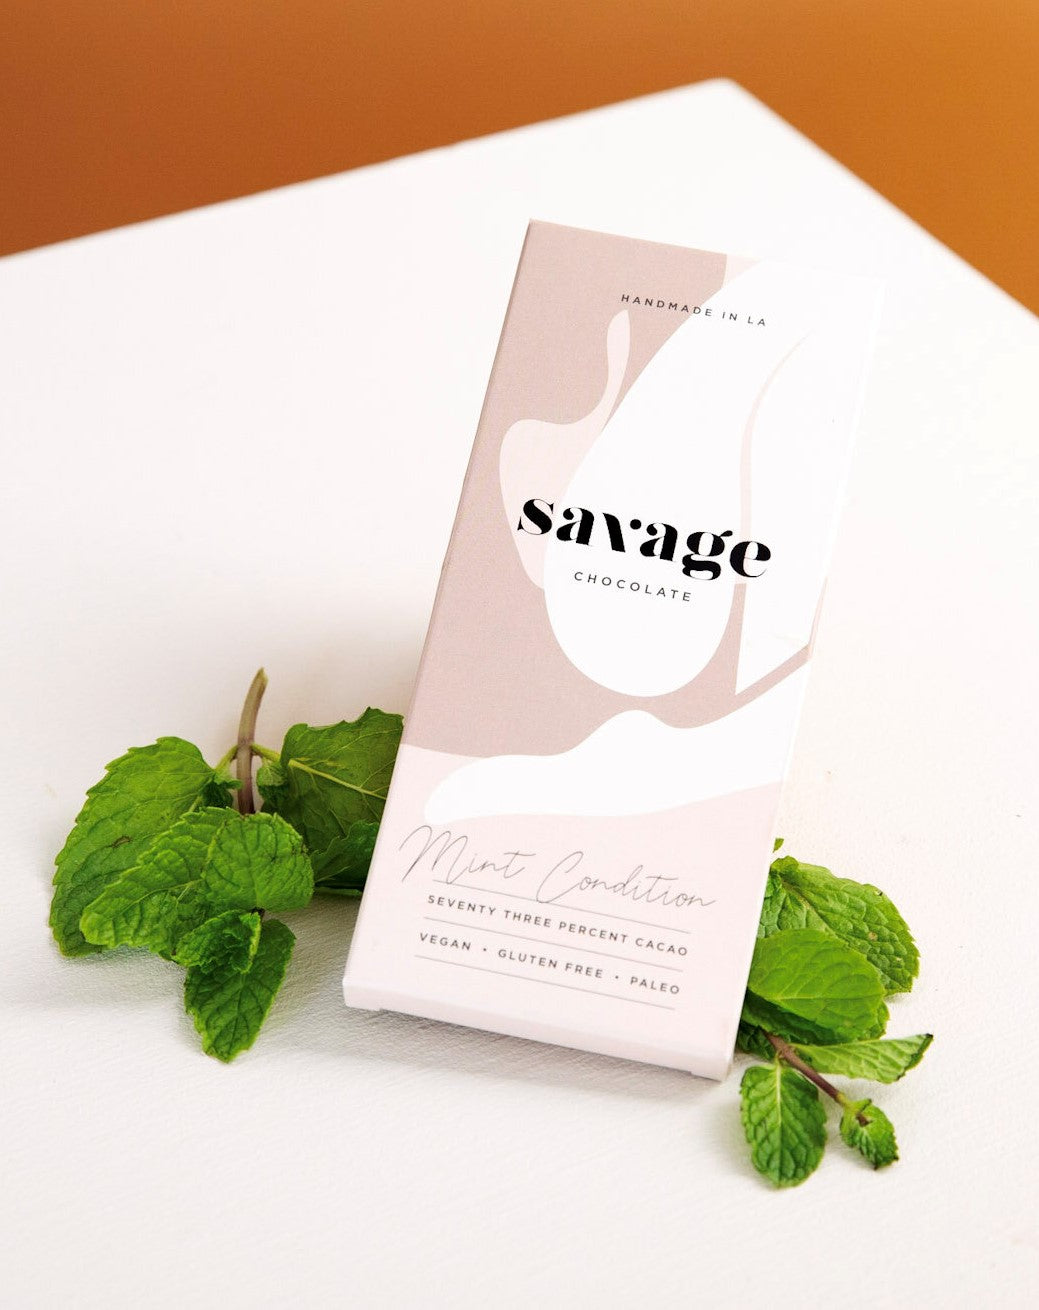 Savage Chocolate, Mint Condition, 73% Cacao